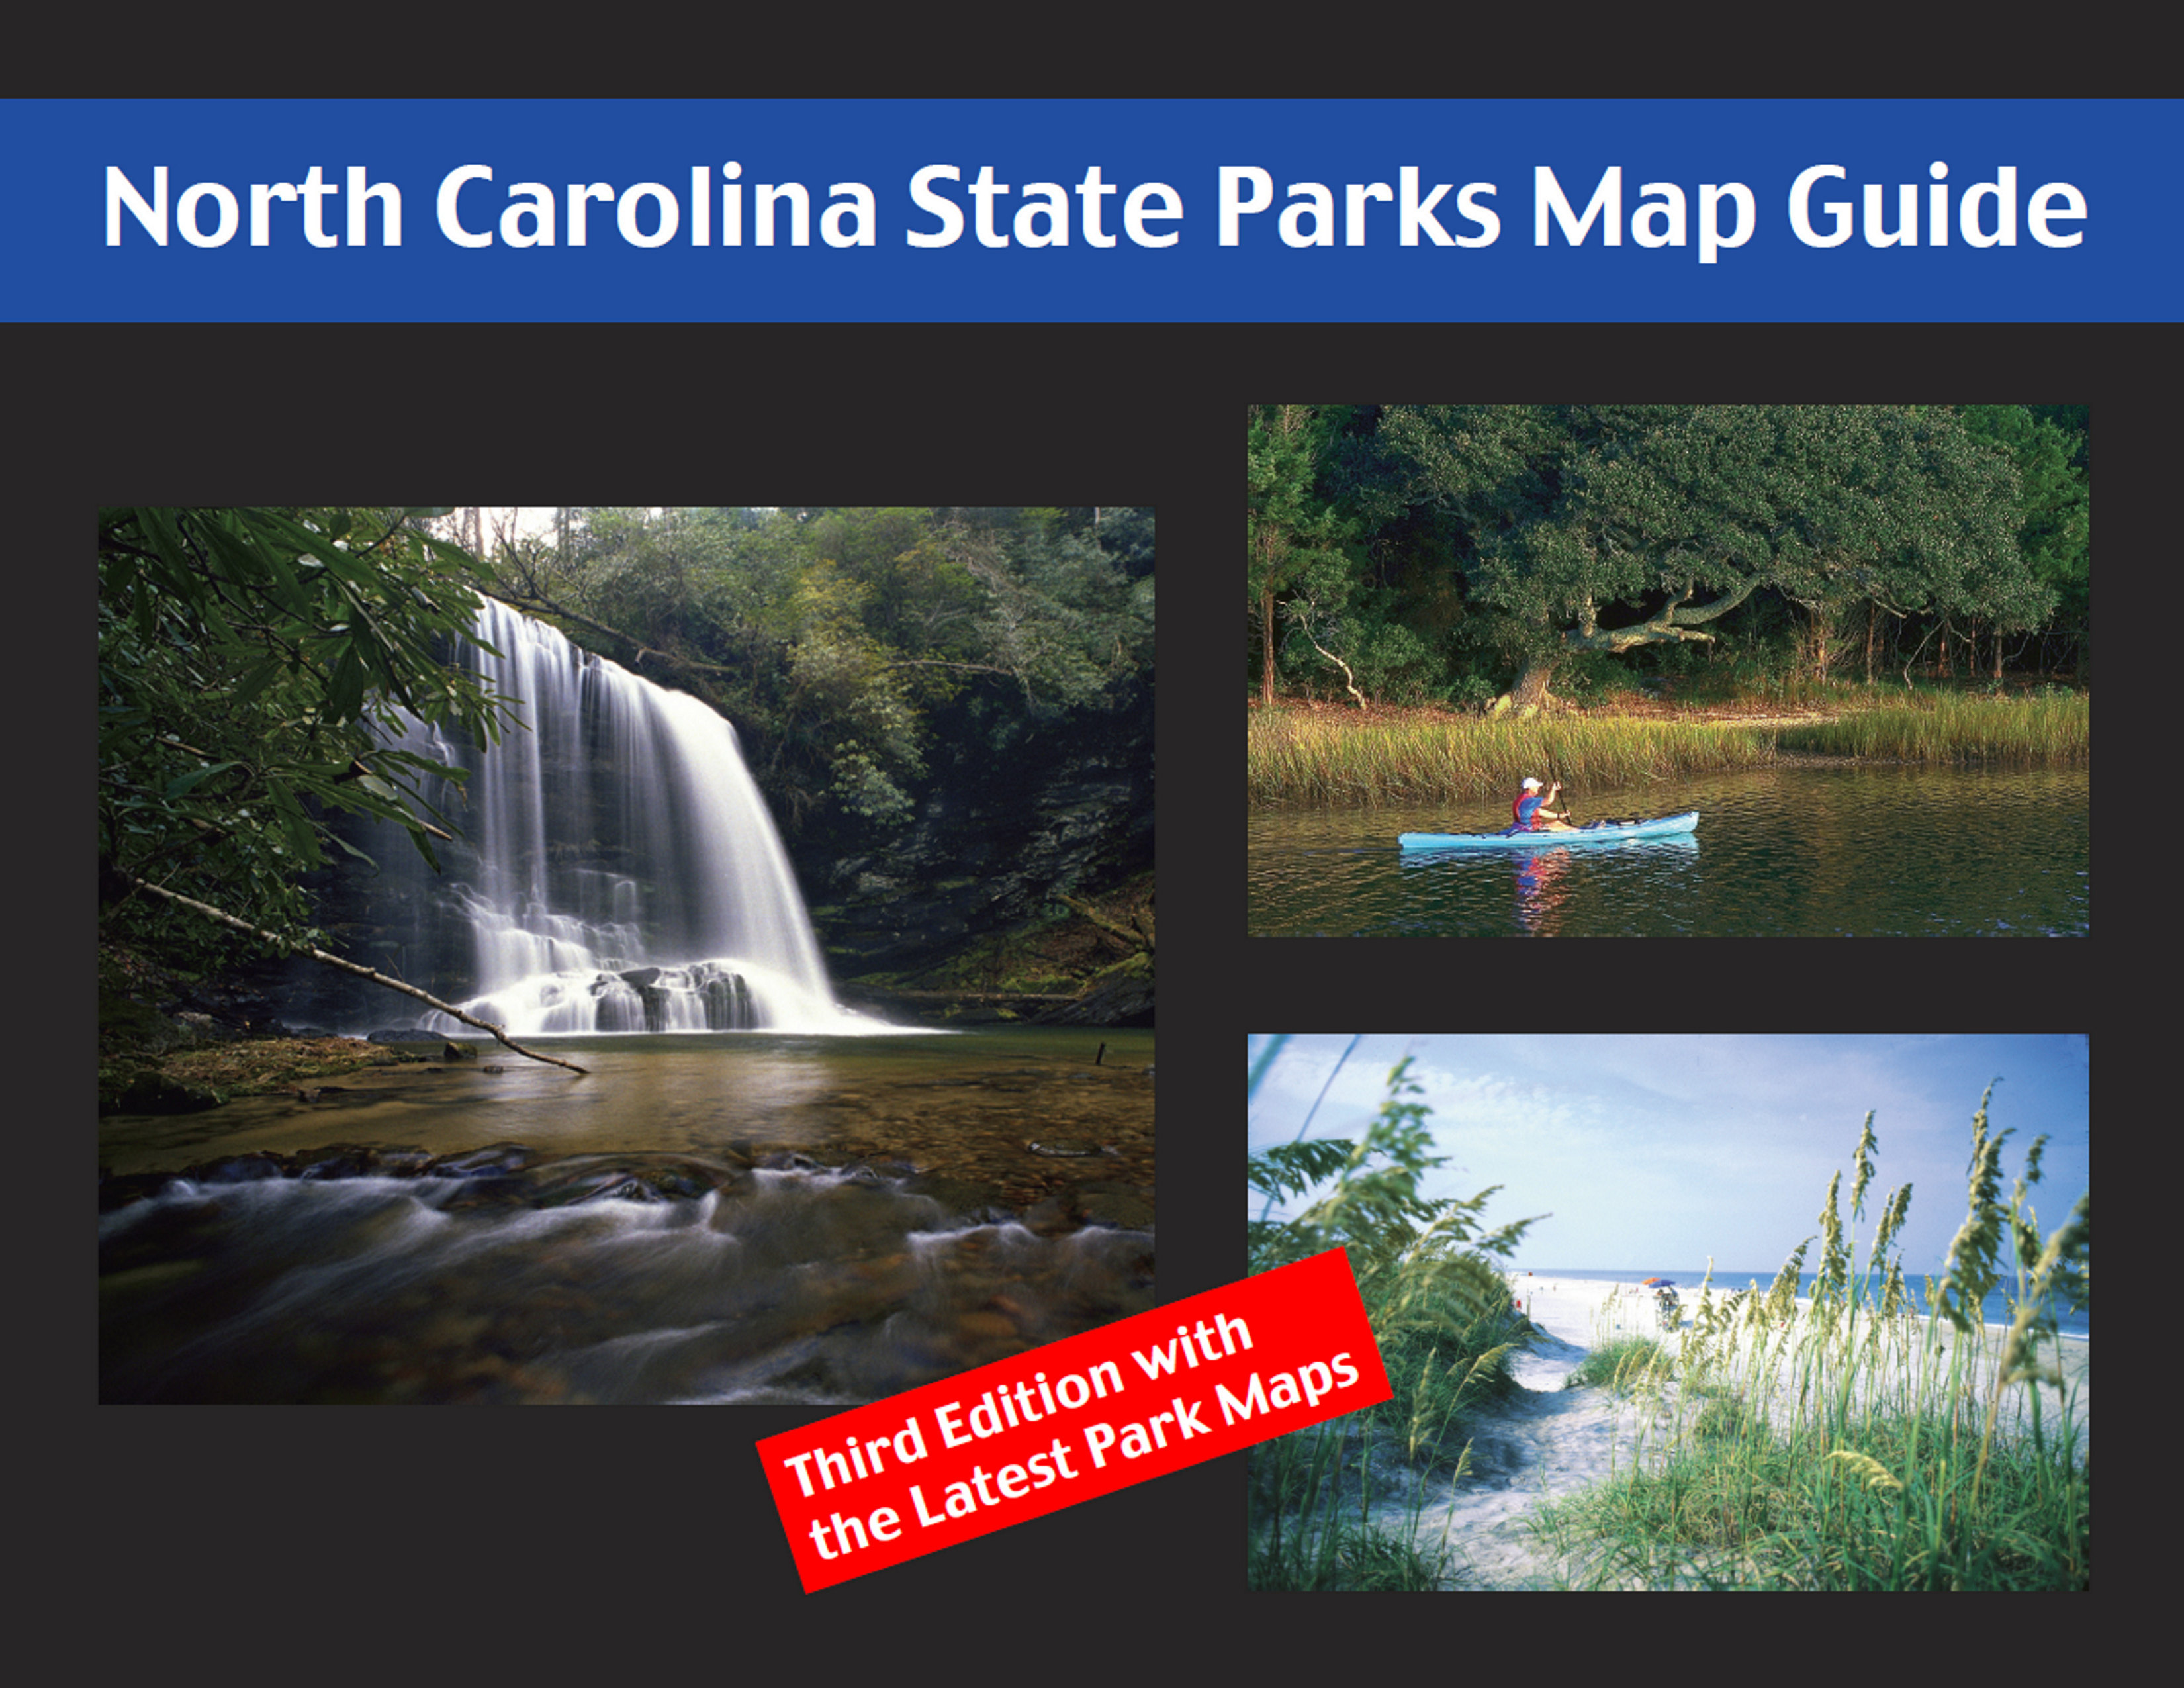 NC State Park Map Guide